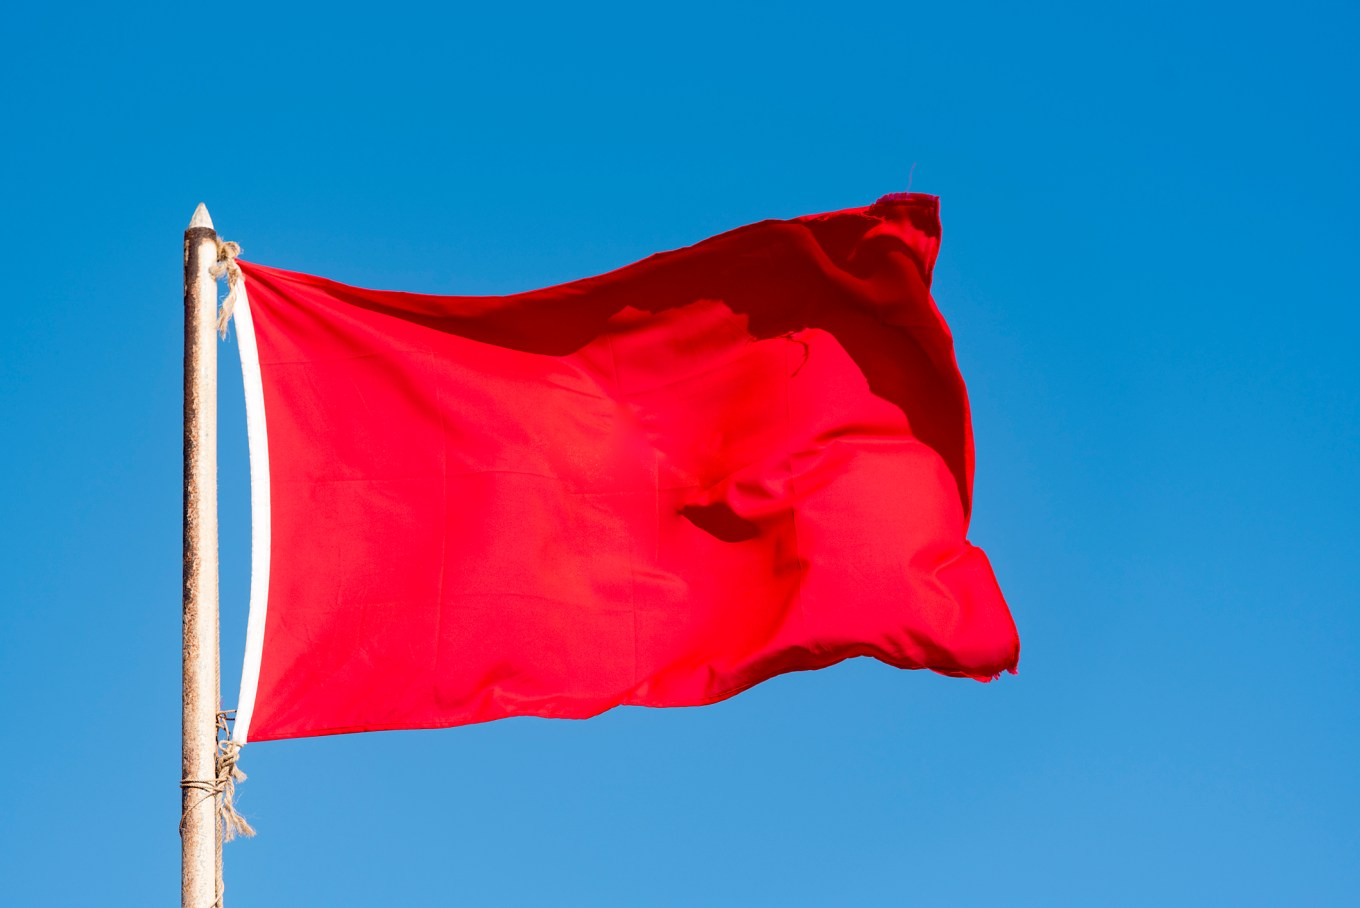 Old red flag and blue sky, red banner waving against blue sky